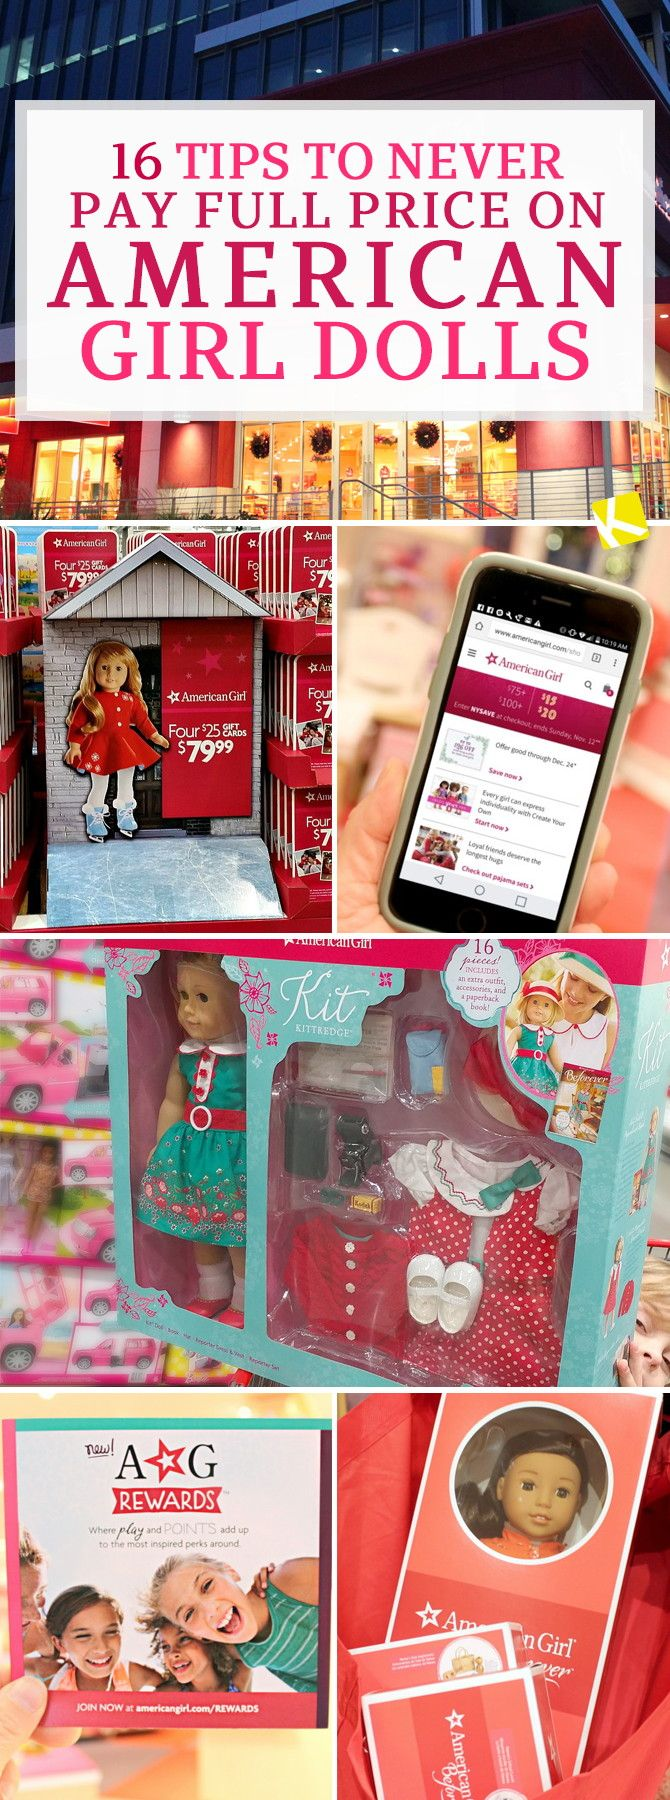 16 Best Tips to Never Pay Full Price on American Girl Dolls